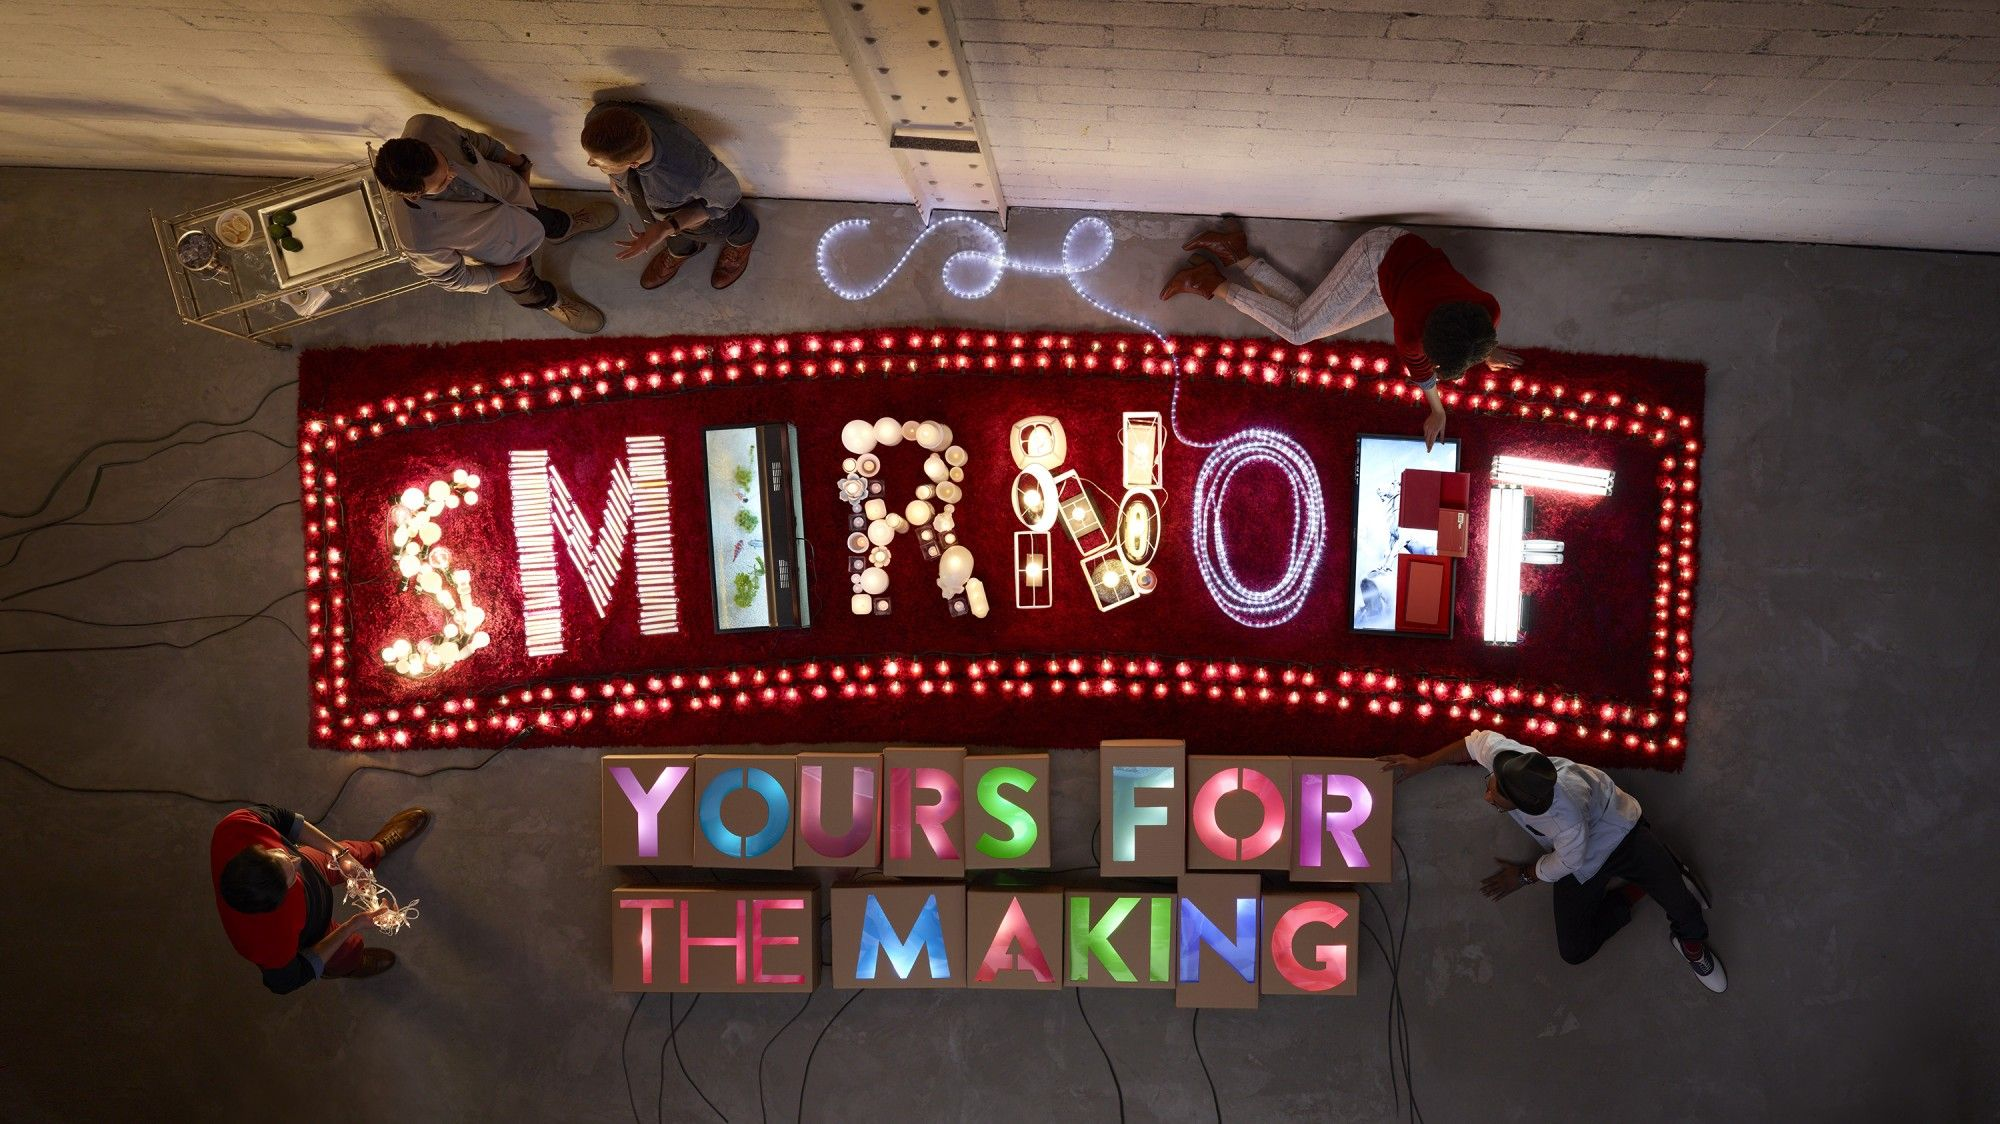 Smirnoff - Yours For The Making